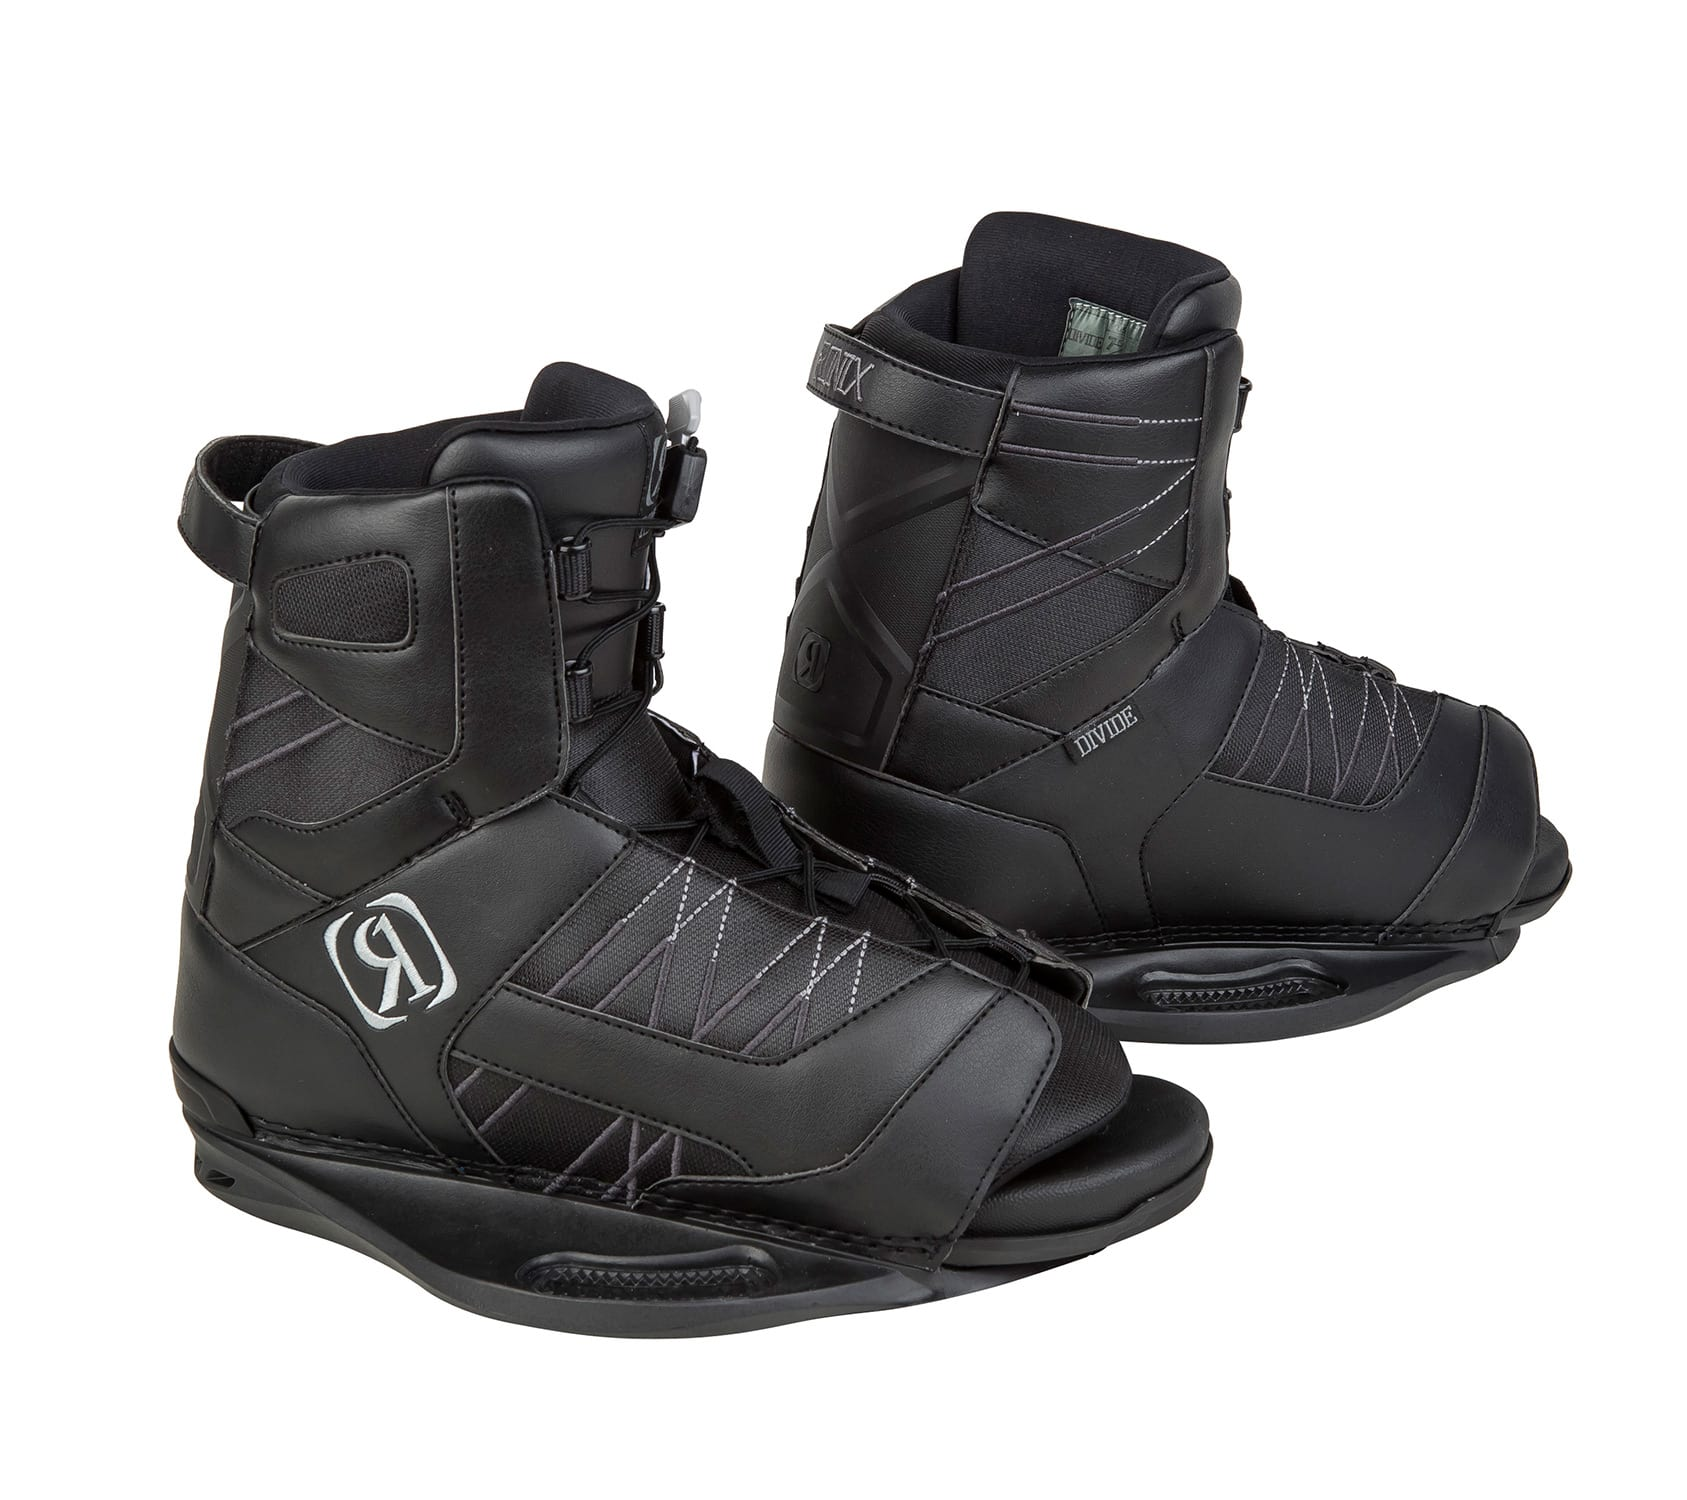 Ronix Divide Wakeboard Boots Black/Silver Mens Sz 7.5-11.5